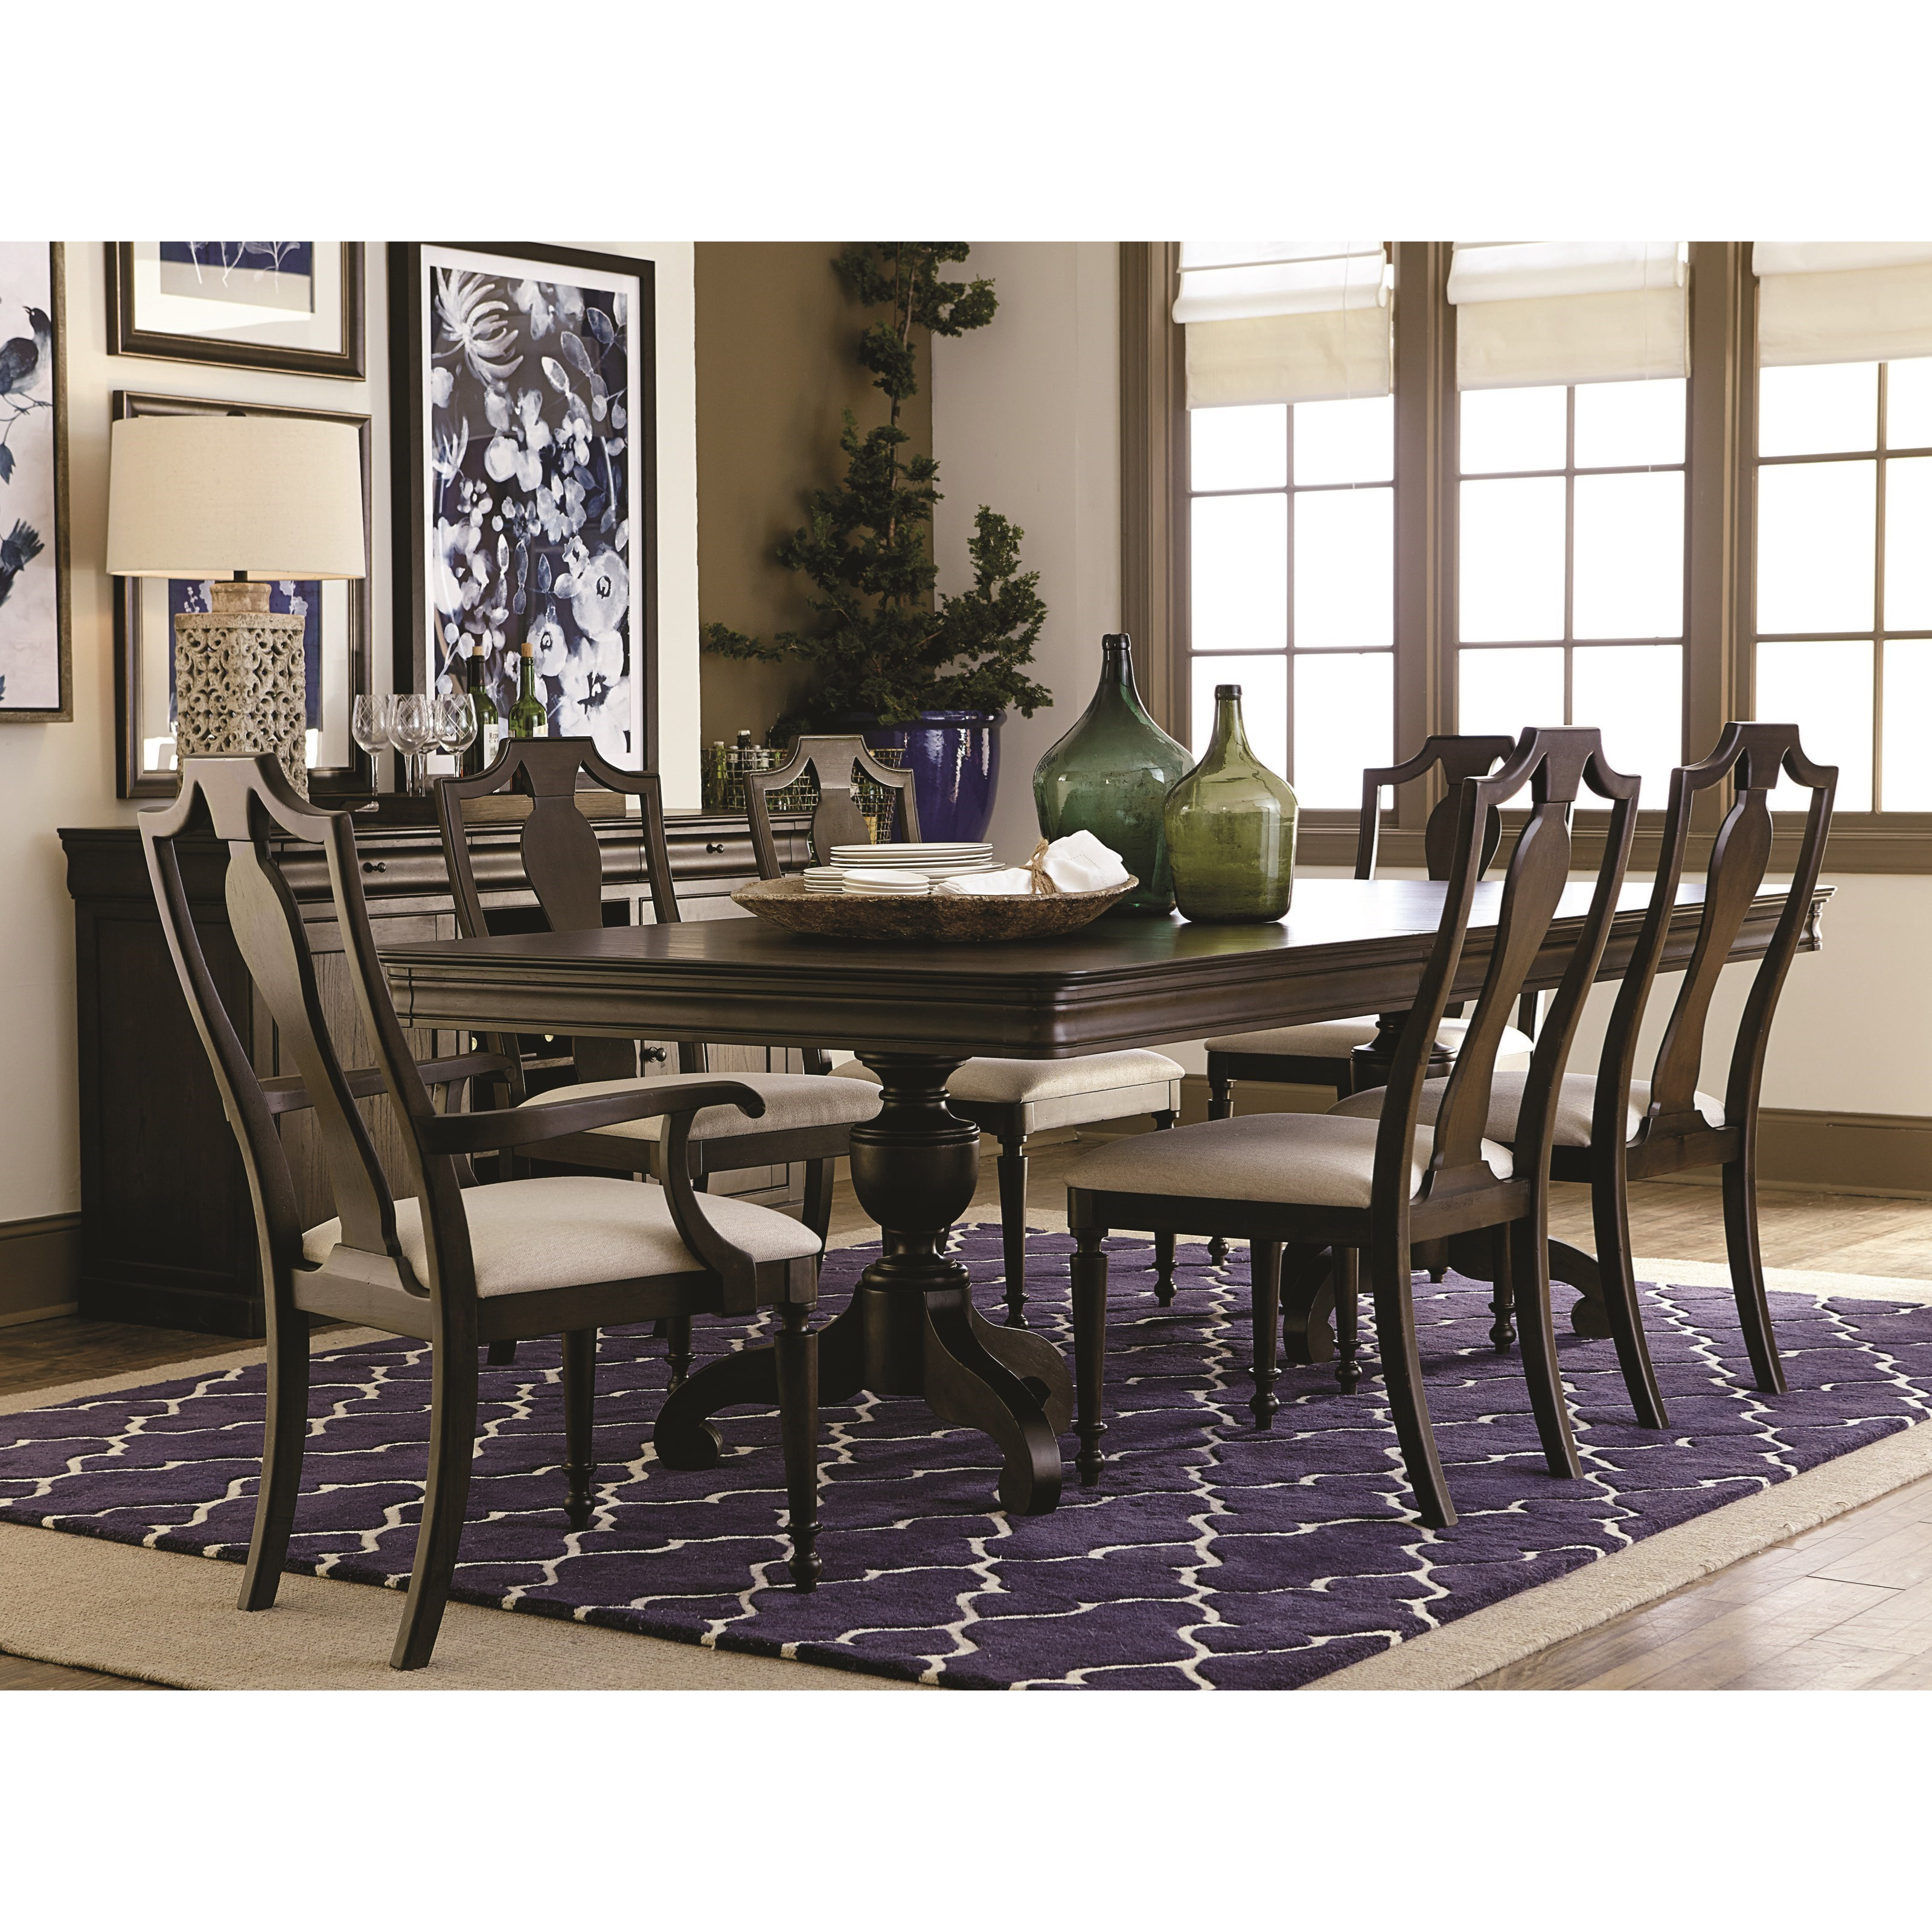 Bassett Dining Room Furniture: Bassett Provence Formal Dining Room Table And Chair Set